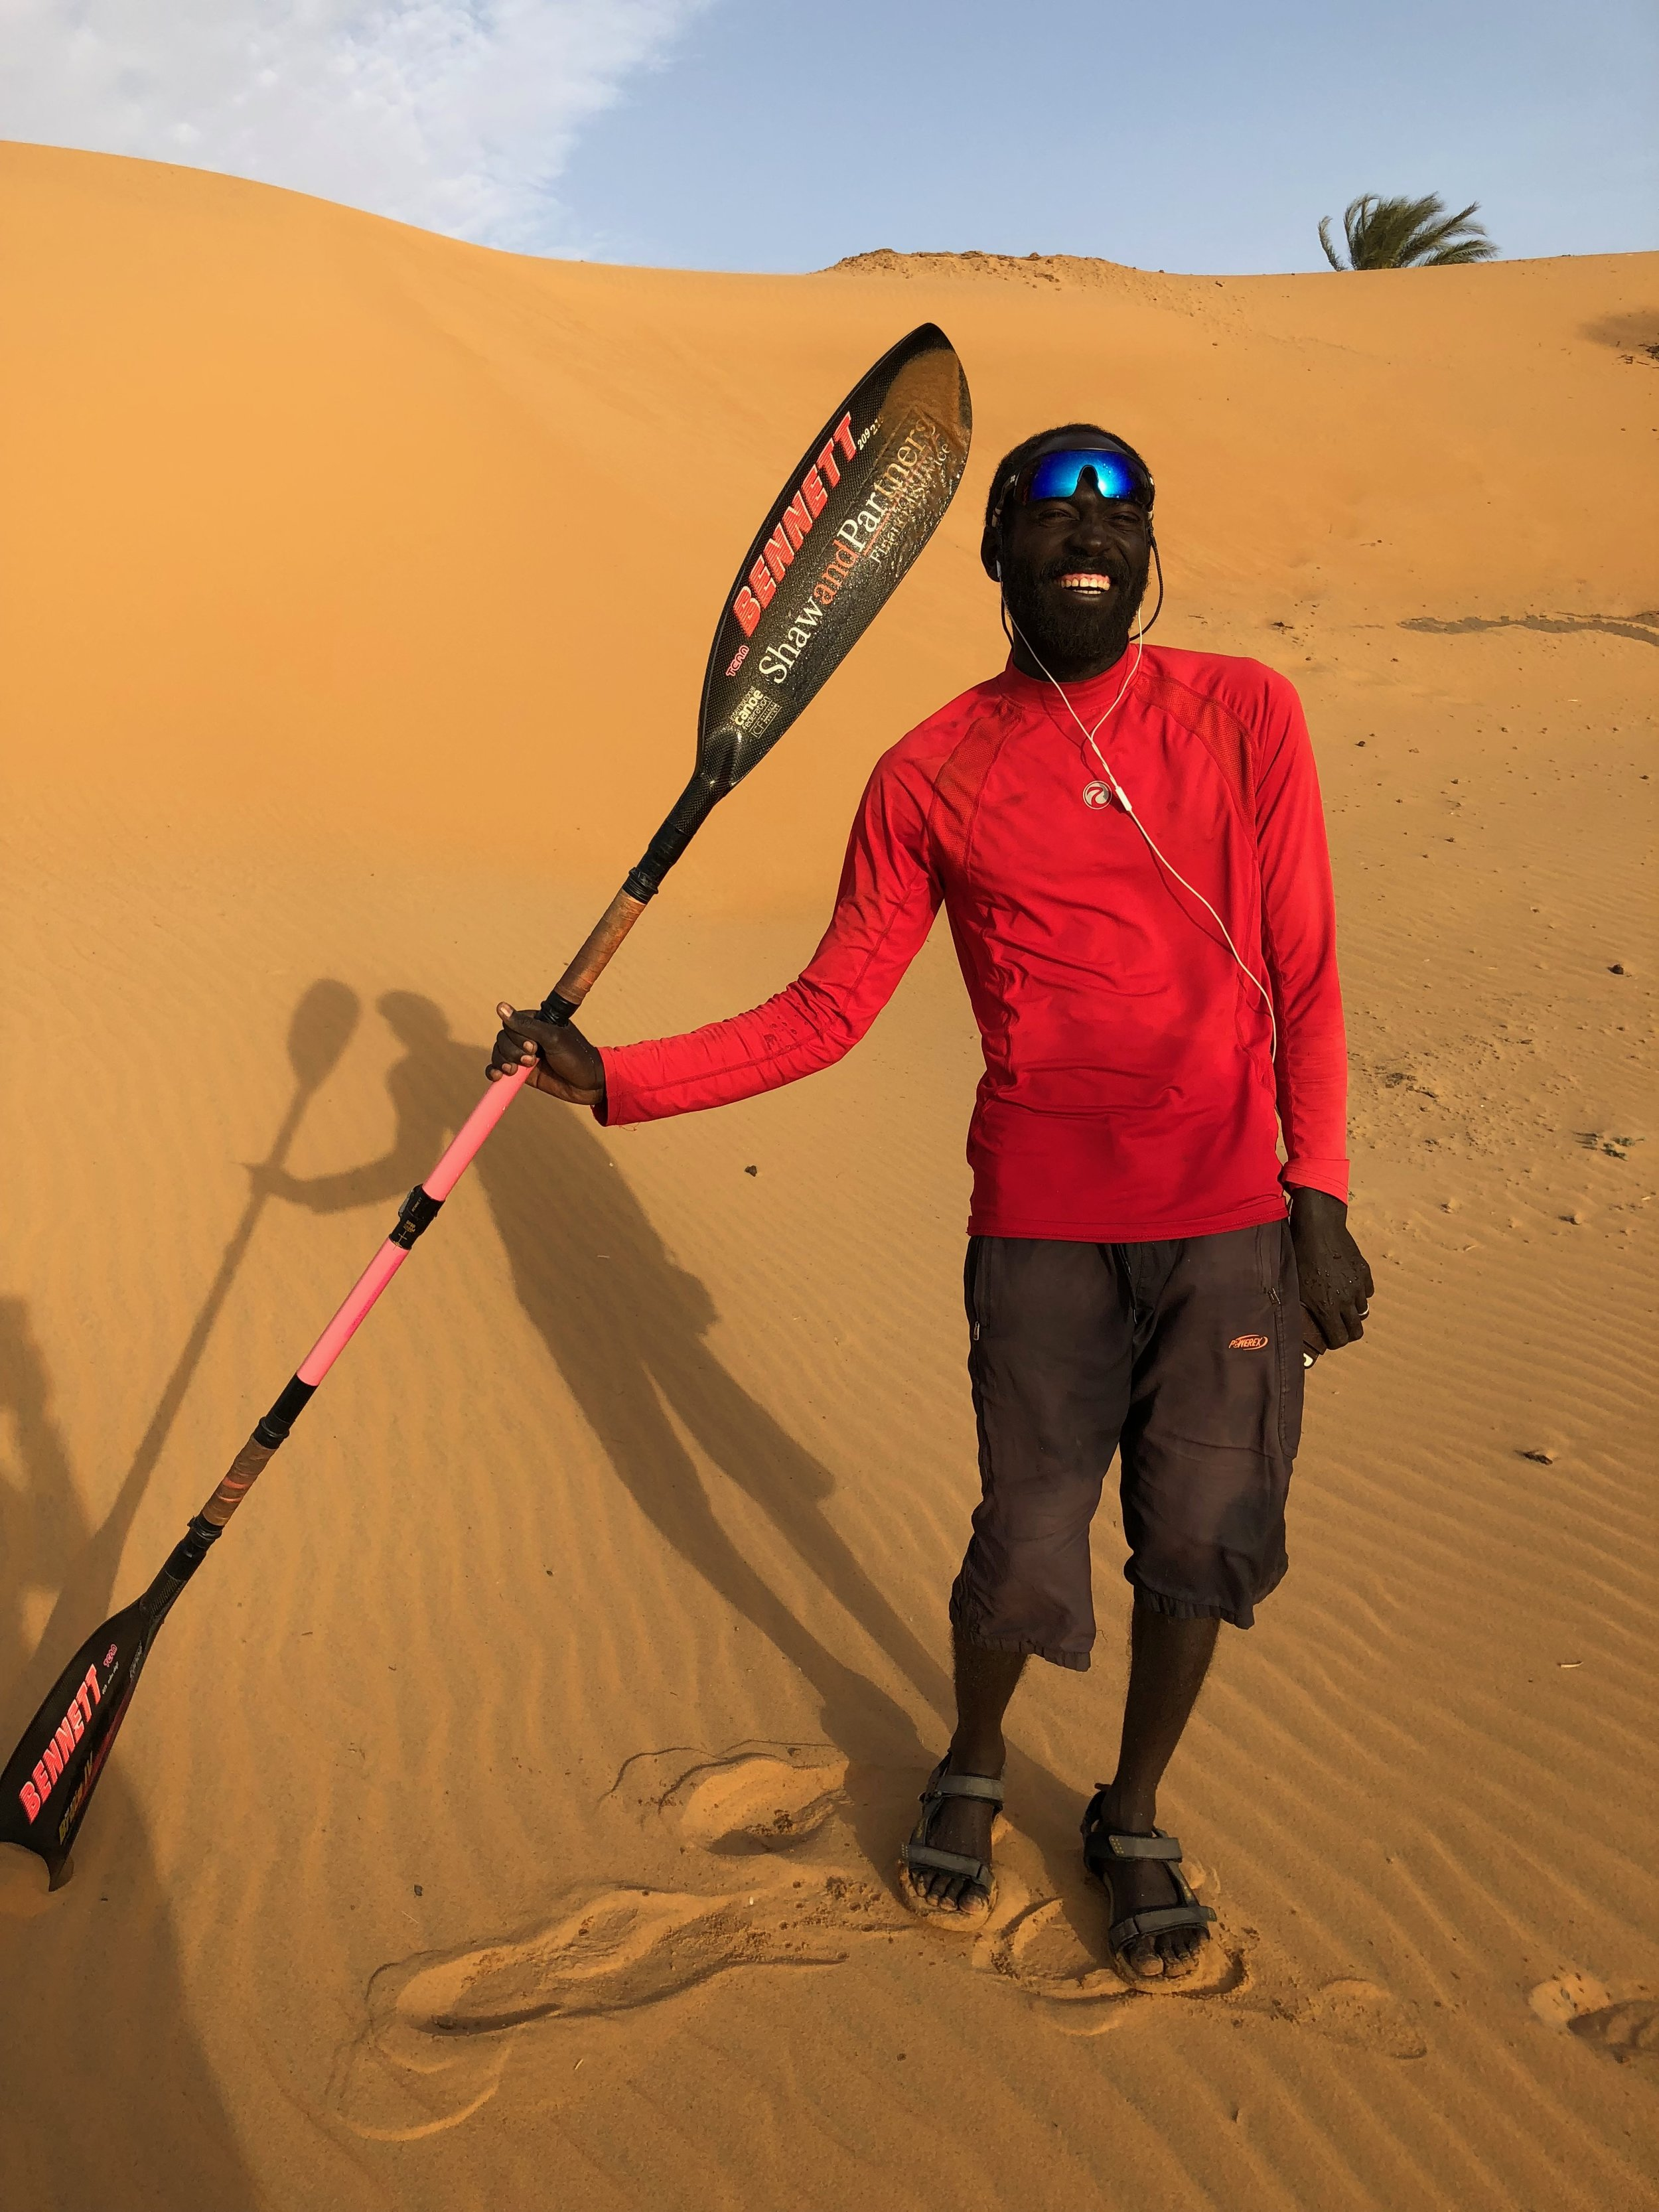 COACH AIMUN  Aimun, one of Sudan's top swim coaches, kindly joined the long paddle up from Khartoum to Wadi Halfa. He did so much to sort out logistics on the way and keep the expedition moving. And we shared many laughs! -